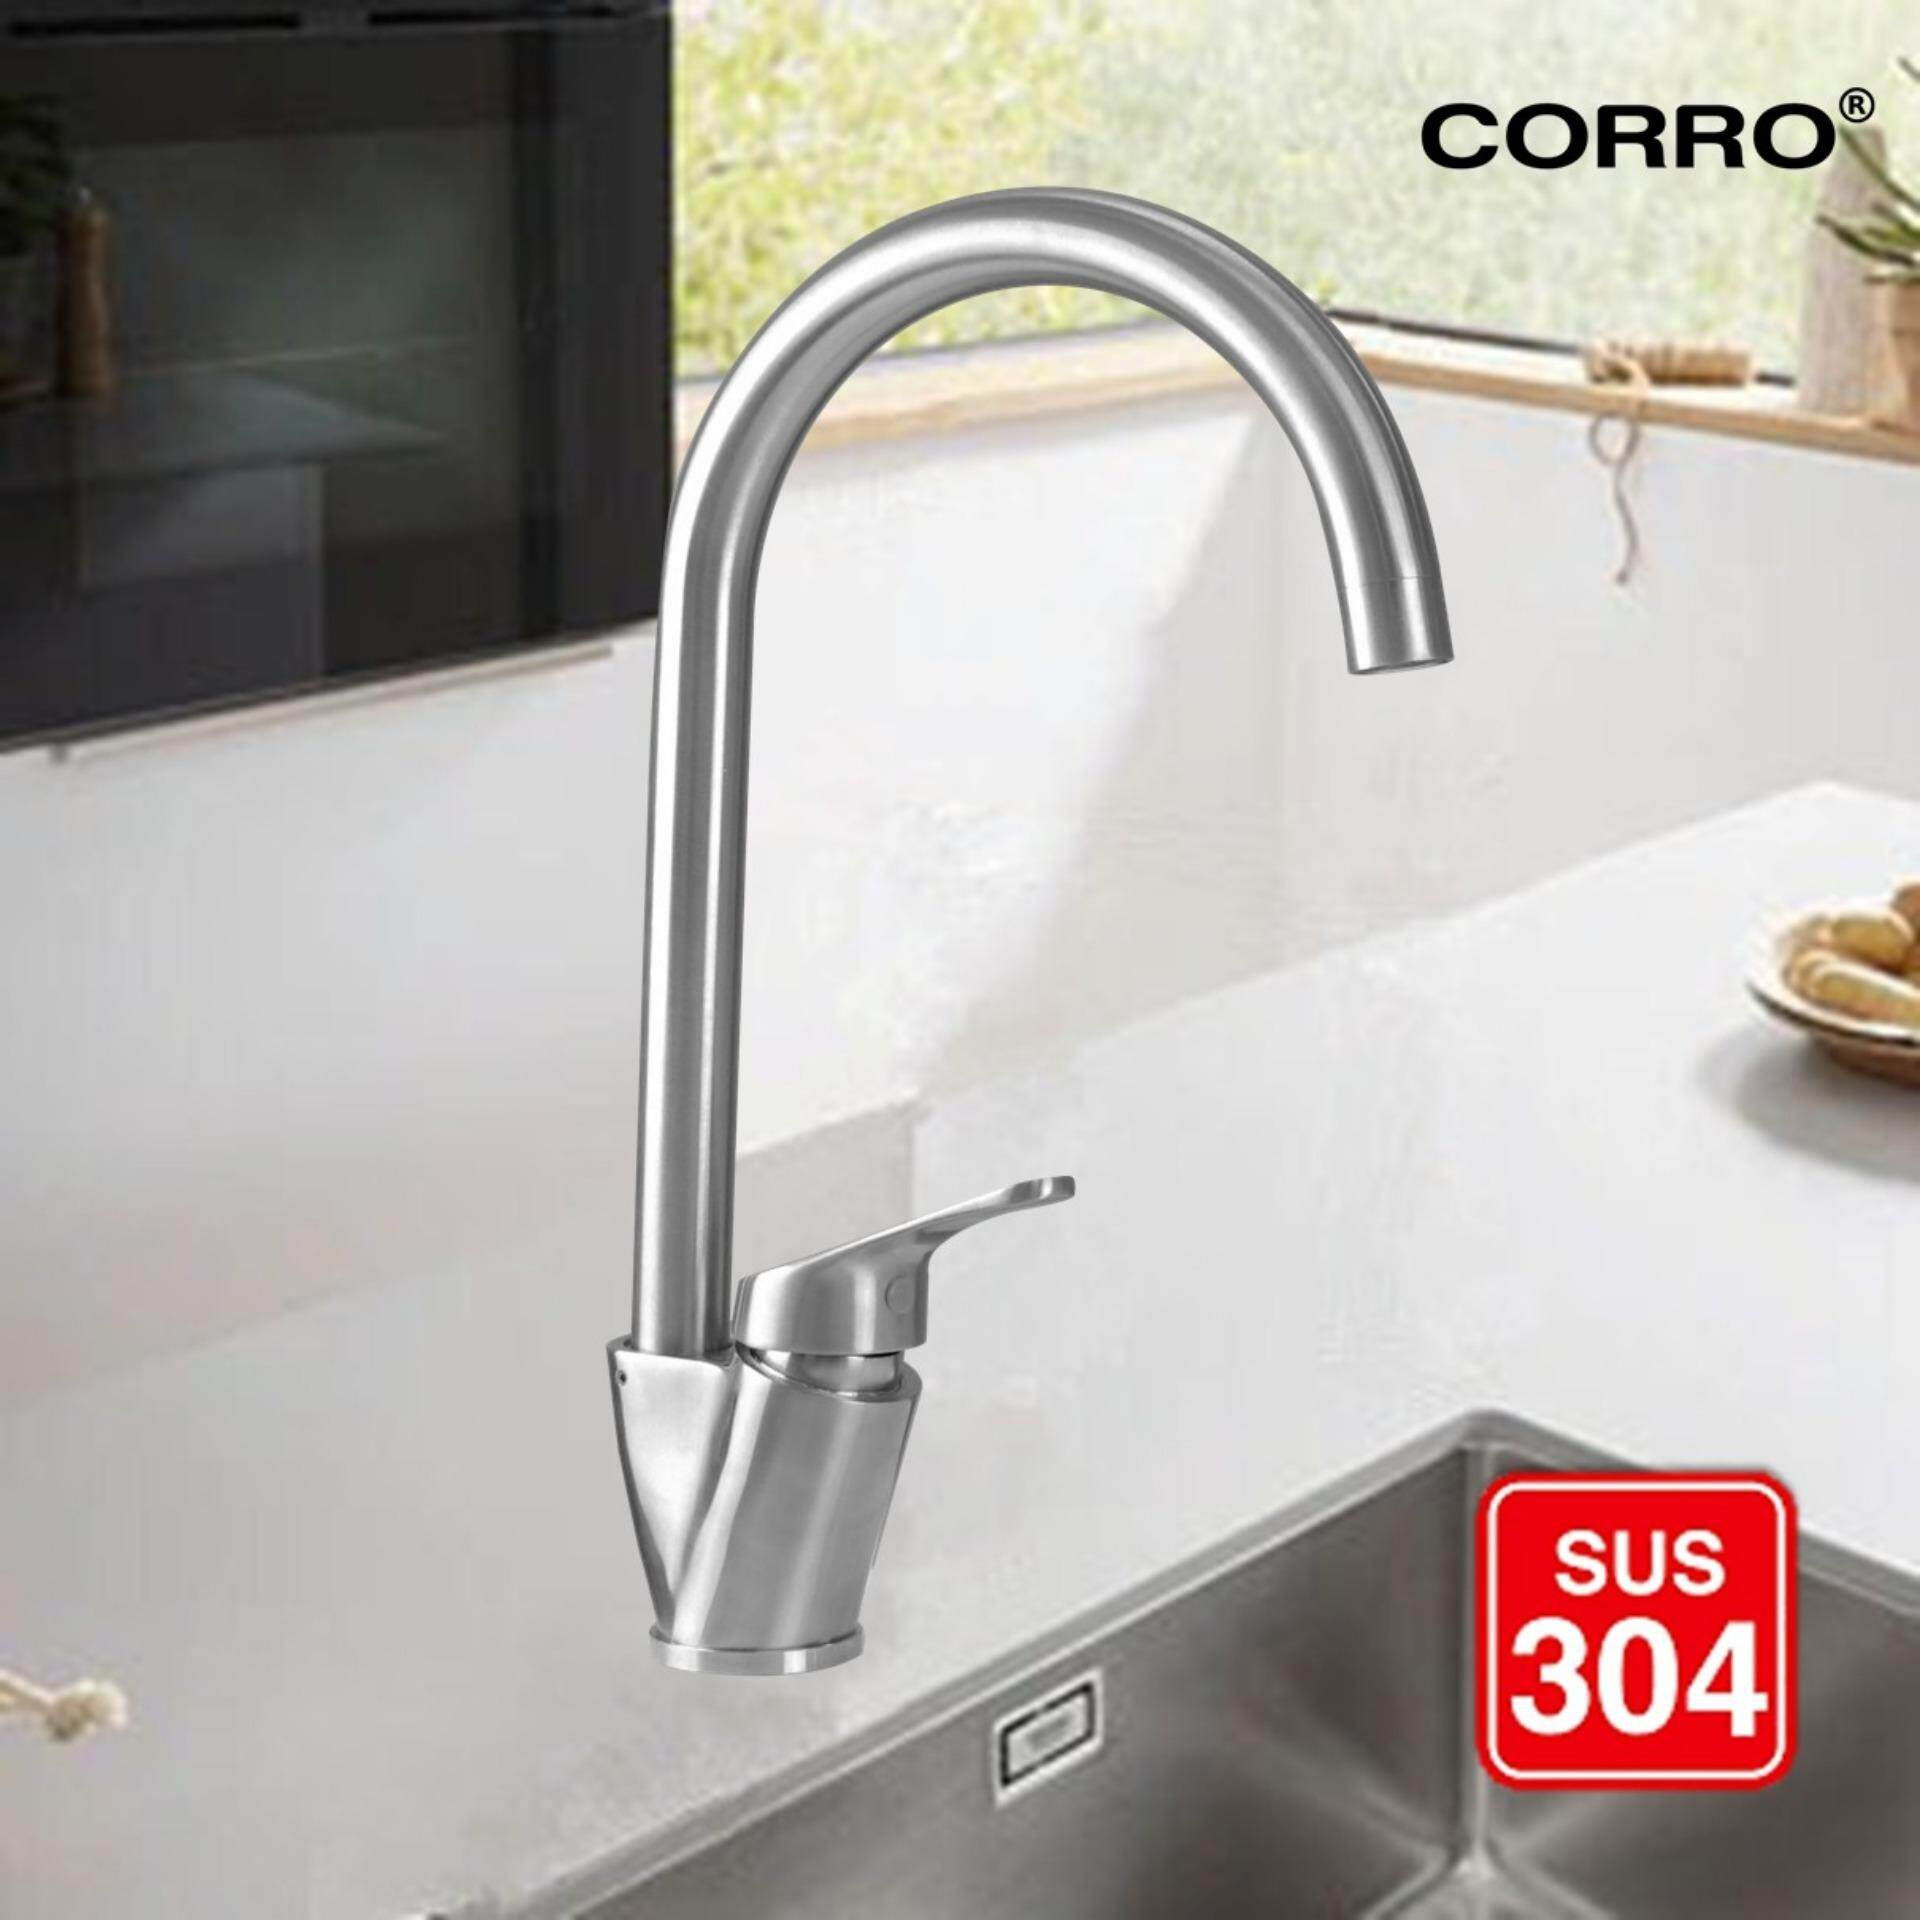 CORRO SUS304 Stainless Steel Kitchen Sink Mixer Tap-CKPT 8644